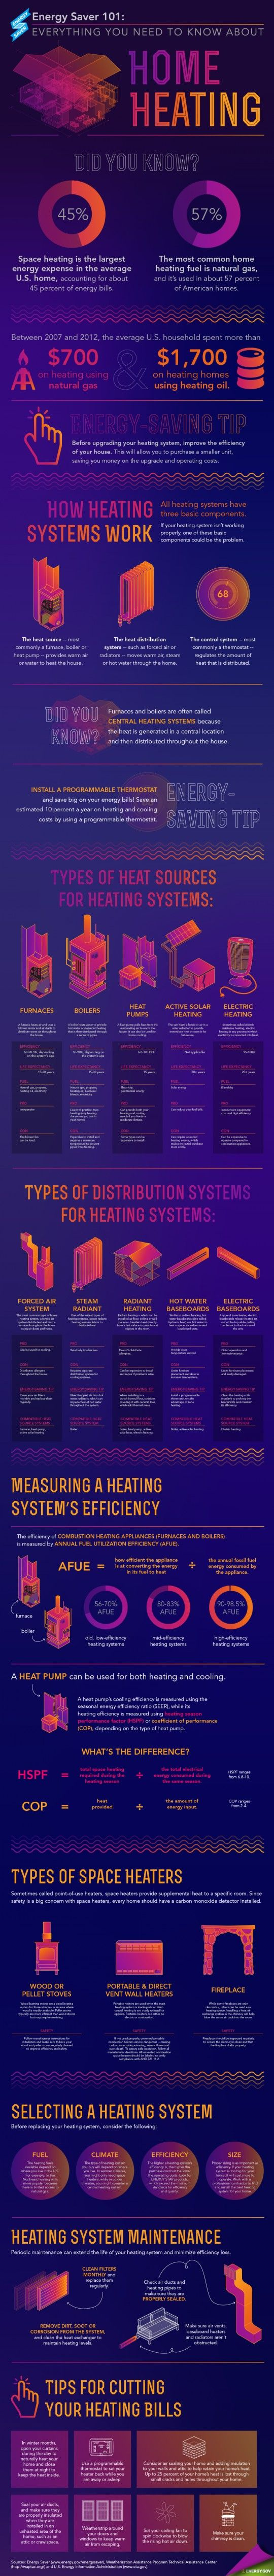 energy-saver-101-infographic-home-heating_52cd9ea2ad347_w540.png (540×5077)